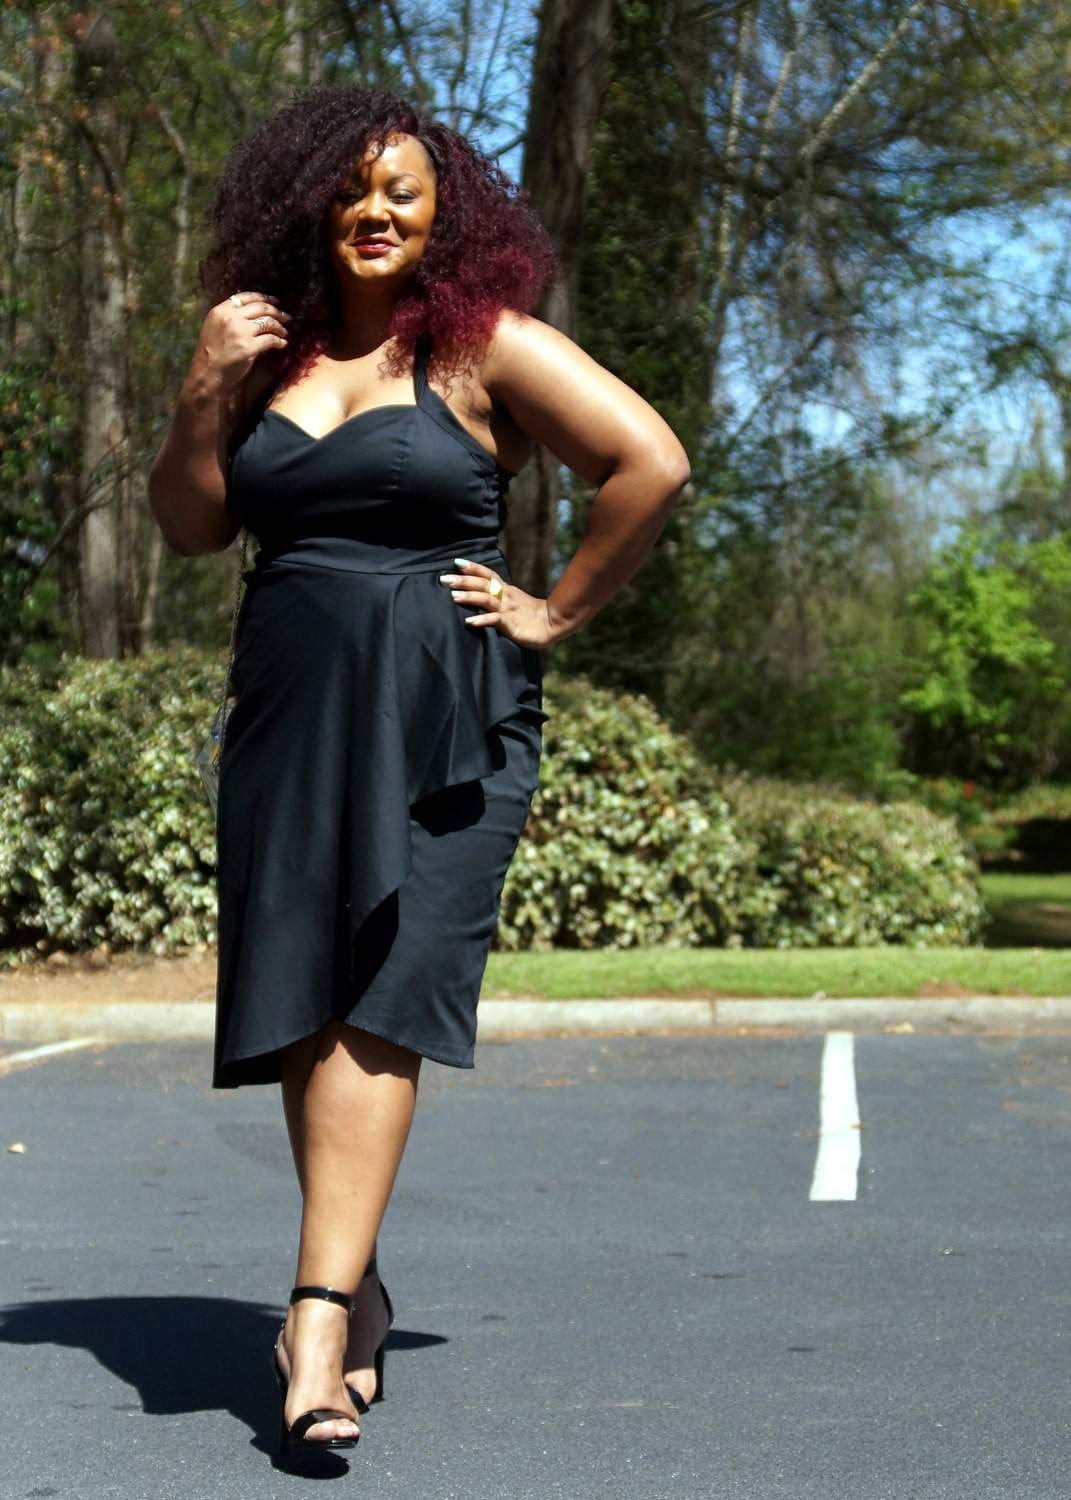 Marie Denee Playing Dress Up in Pin Up Girl Clothing via TheCurvyFashionista.com